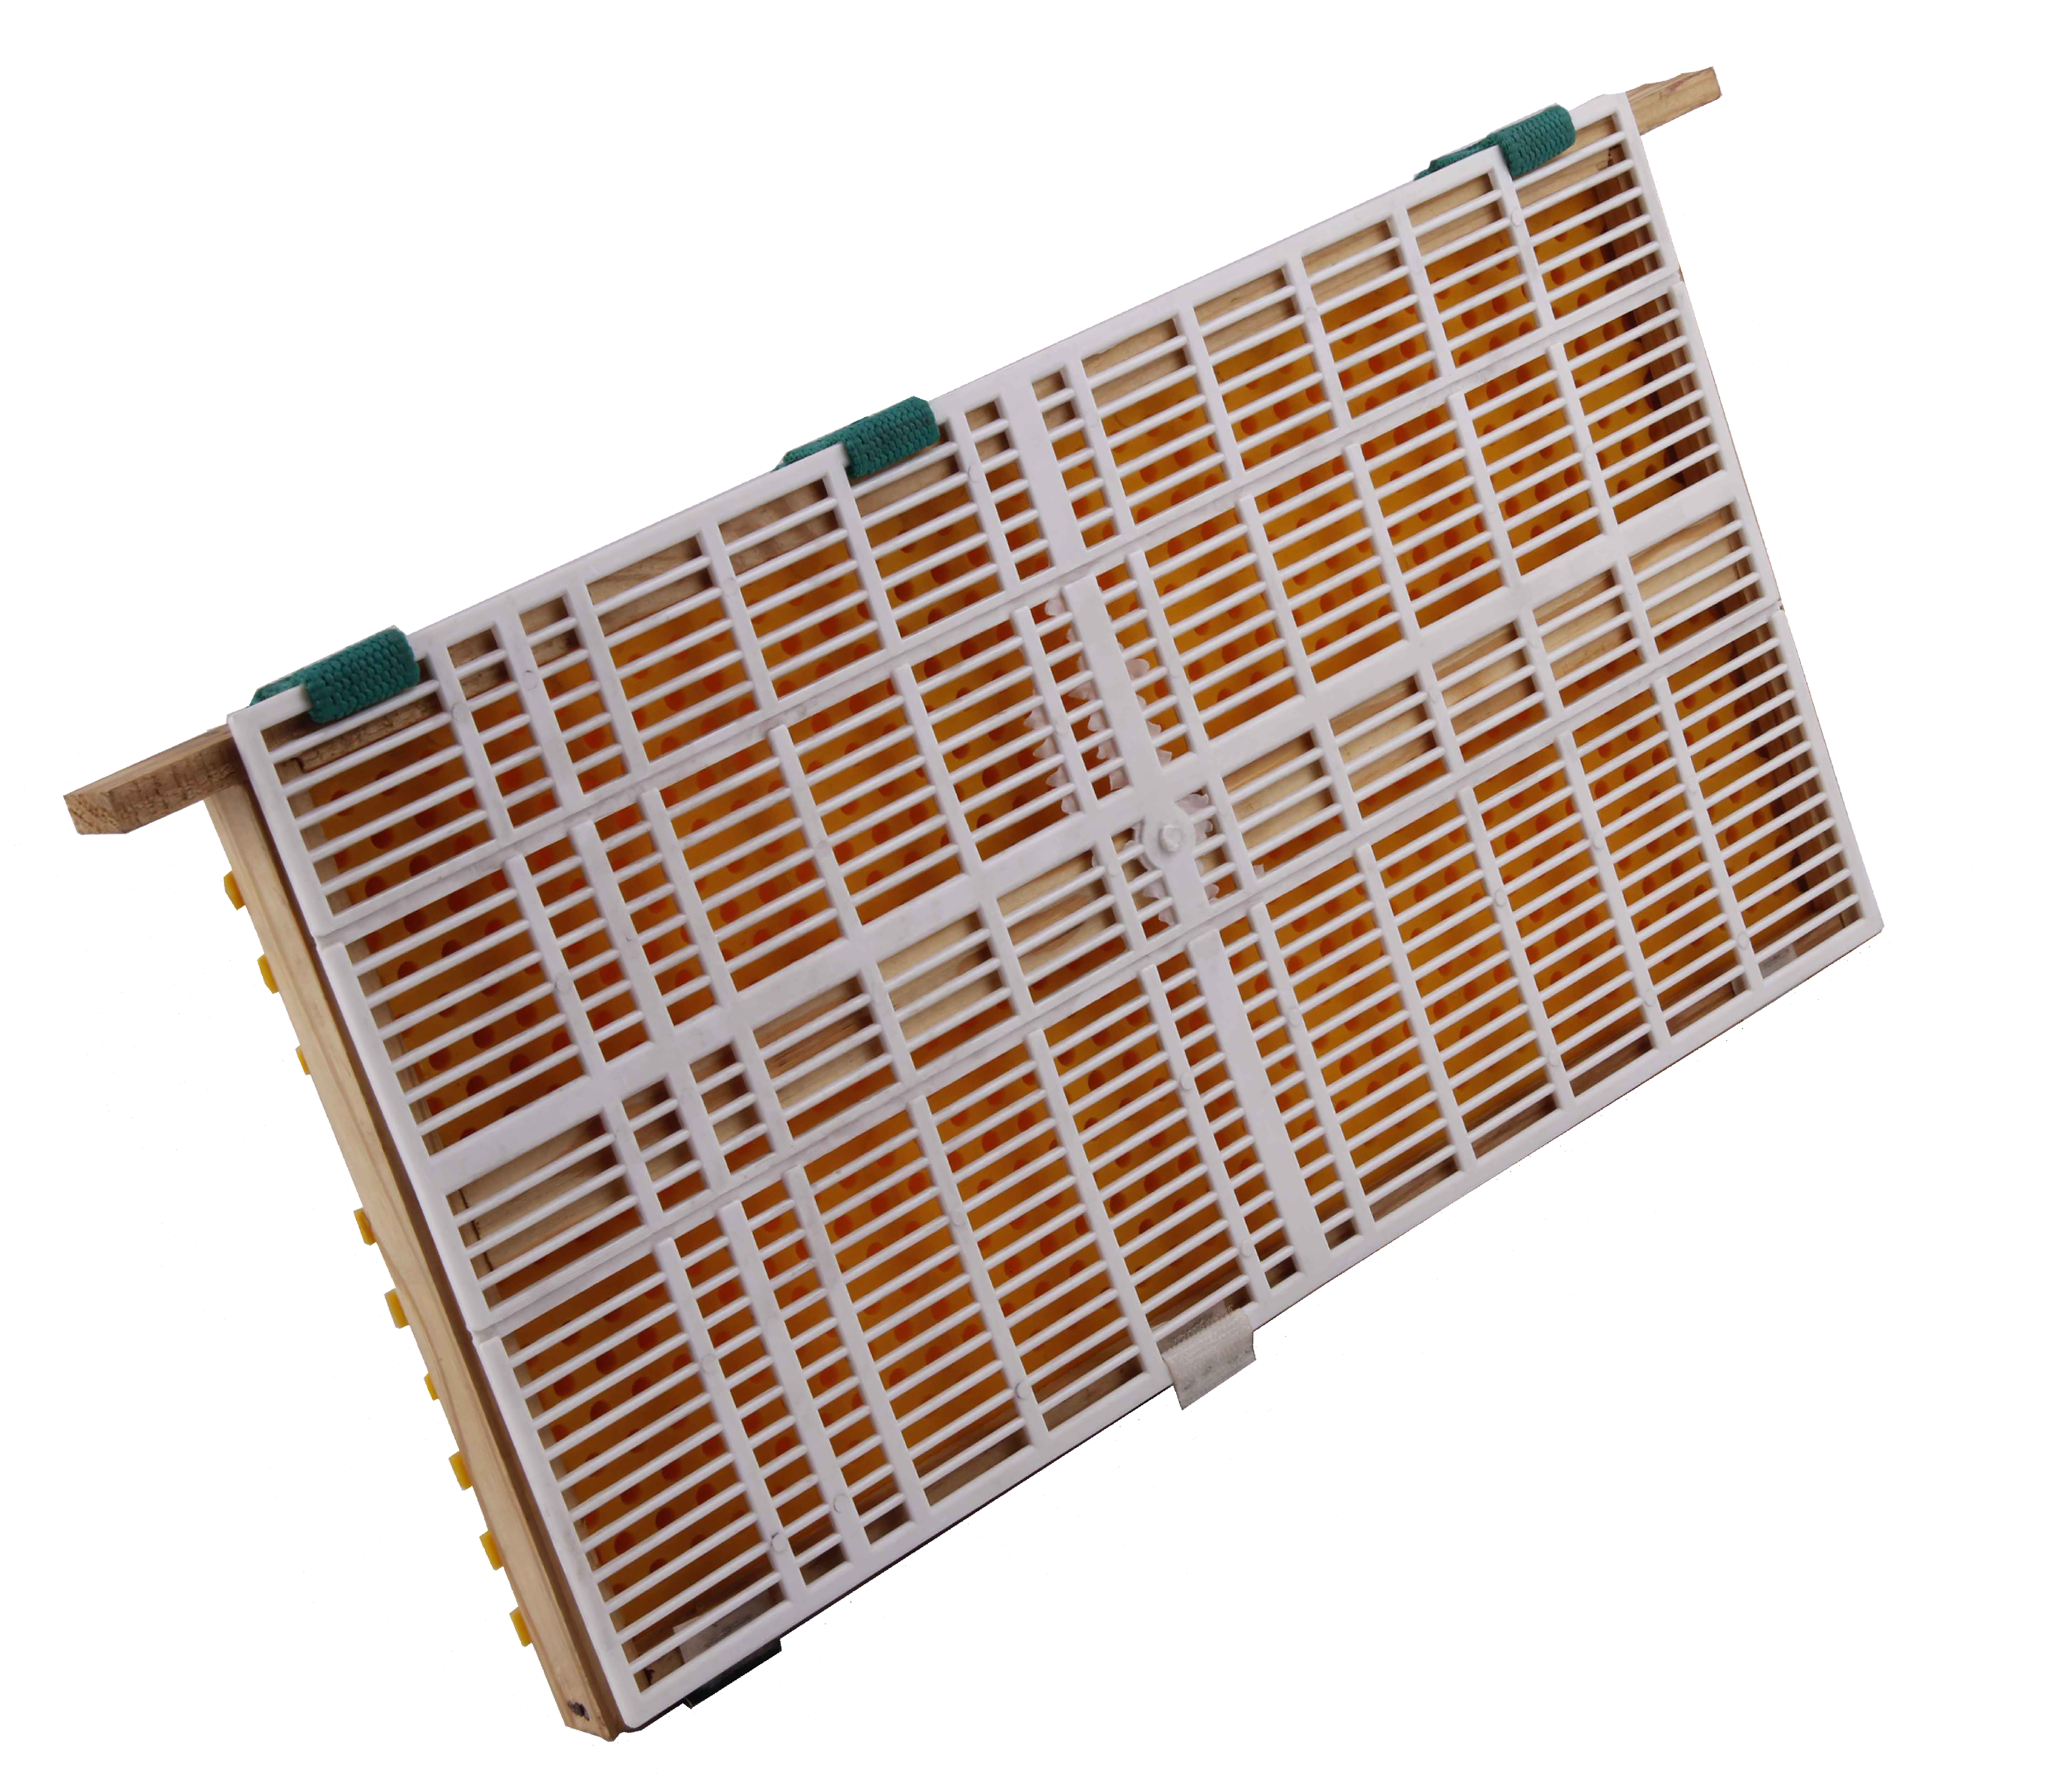 Royal Jelly Production Extraction Kit With SS Tray